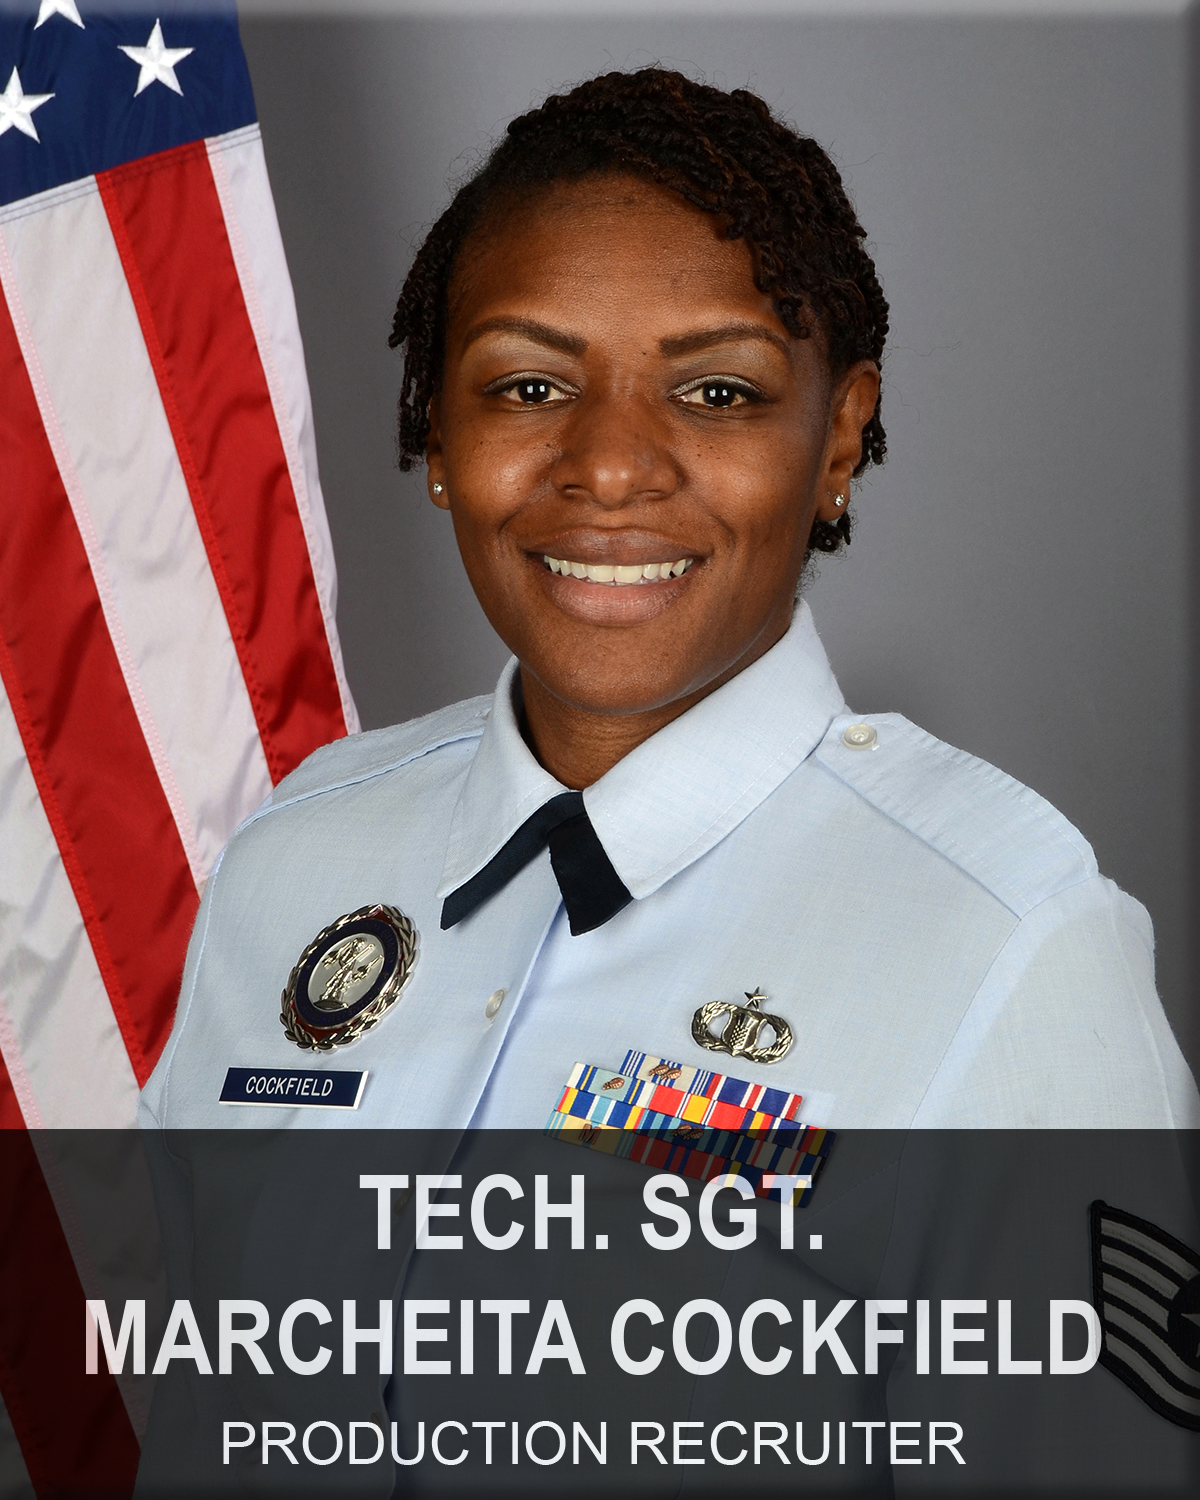 Technical Sergeant Marcheita Cockfield, South Carolina Air National Guard recruiter